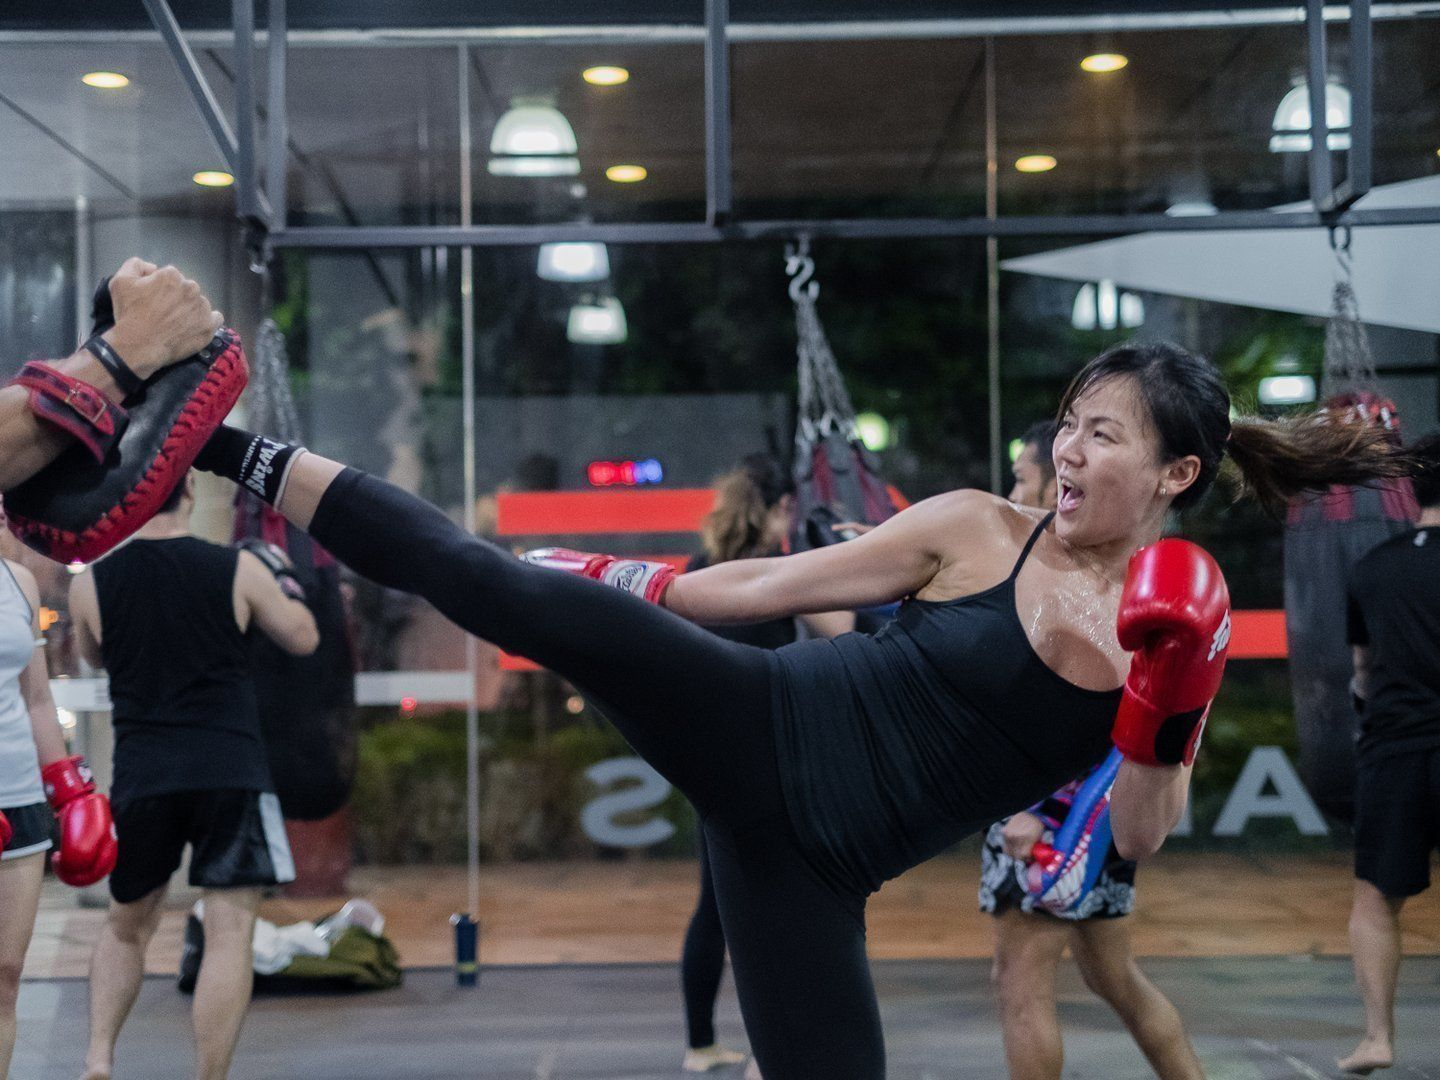 A woman throws a Muay Thai head kick during training.